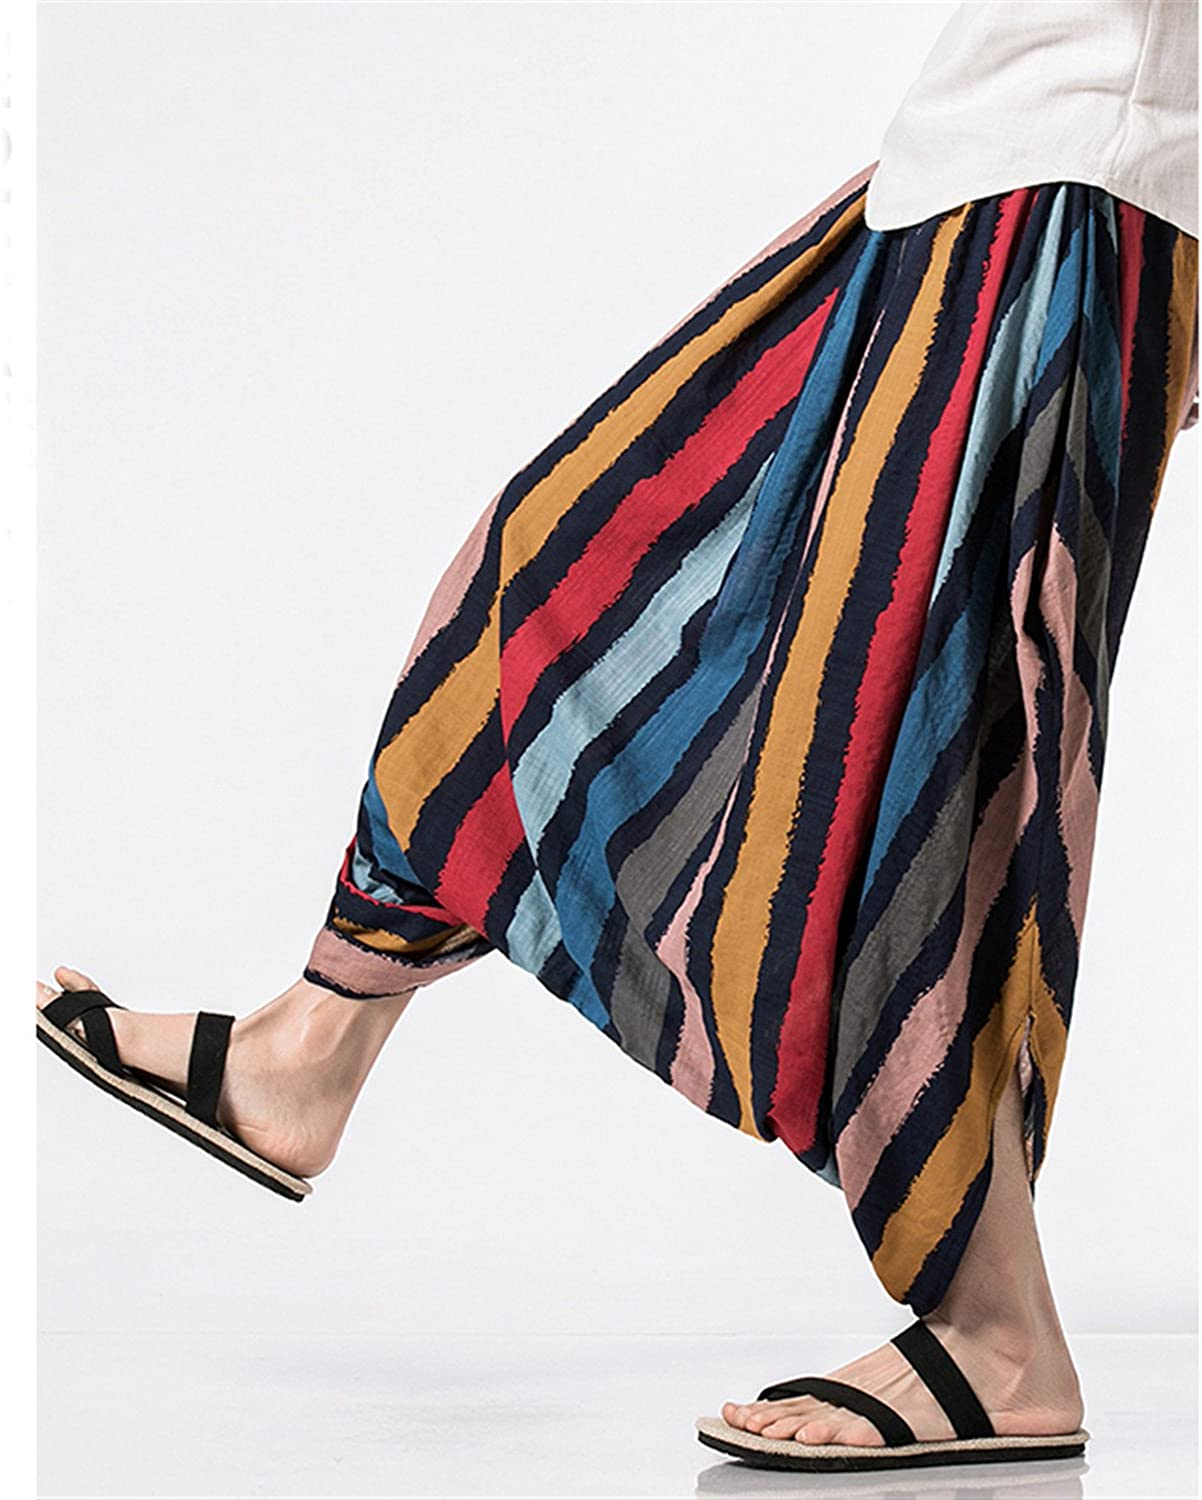 Welcometoo Cotton Linen Harem Pants Mens Summer Male Casual Jogger Pants New Pattern Stripe Print Baggy Loose Pant Trousers